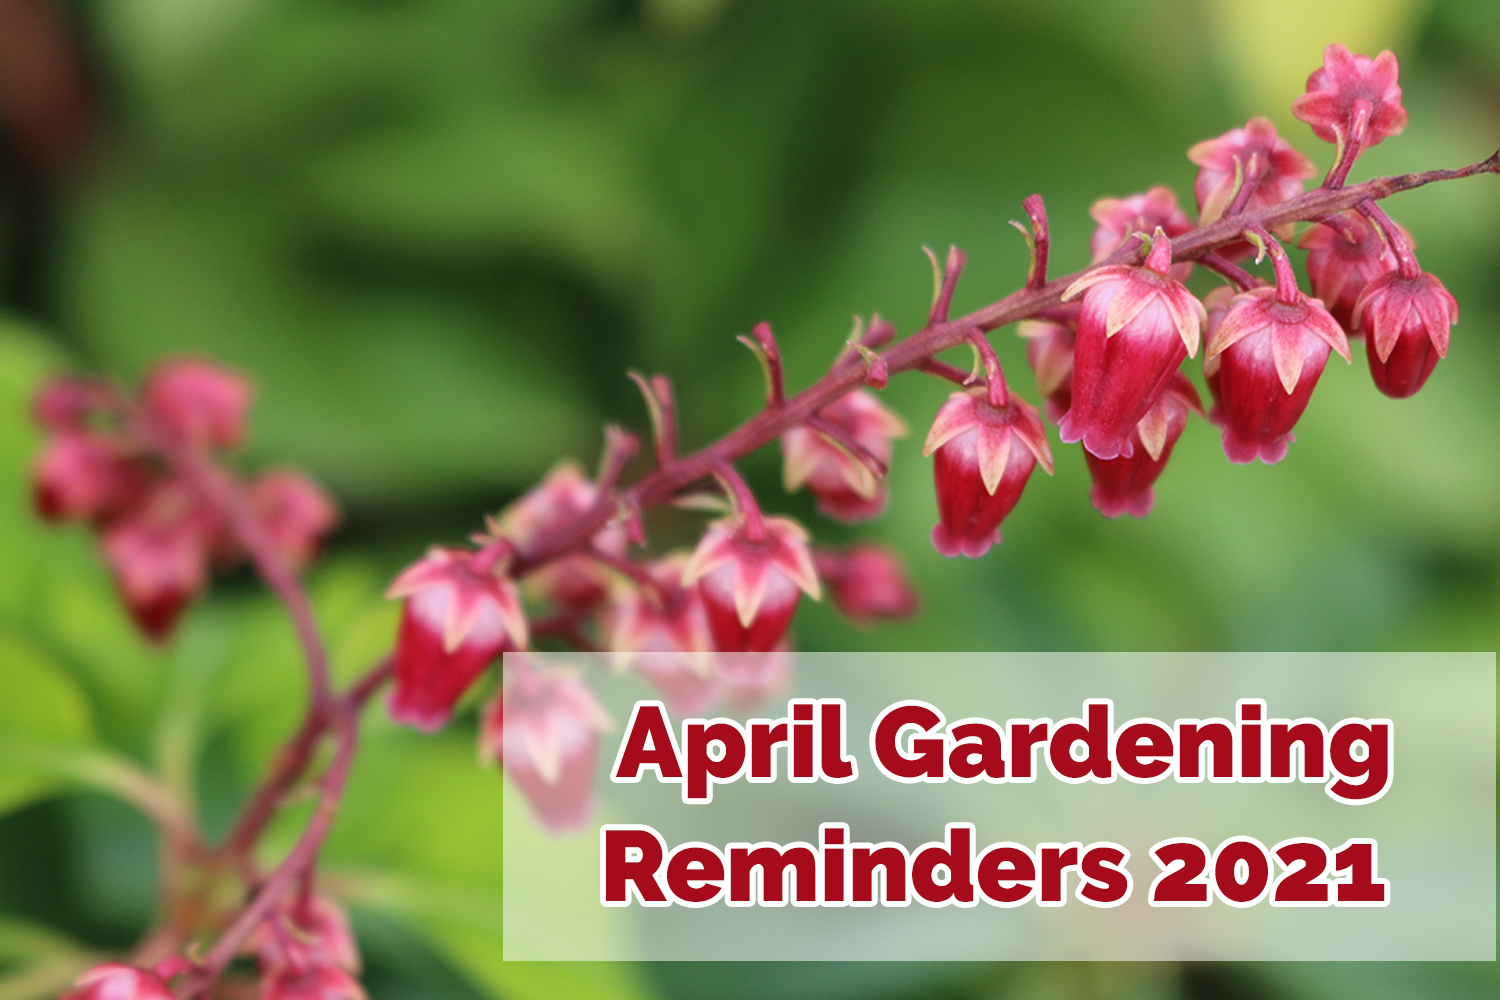 What to do in the garden during April